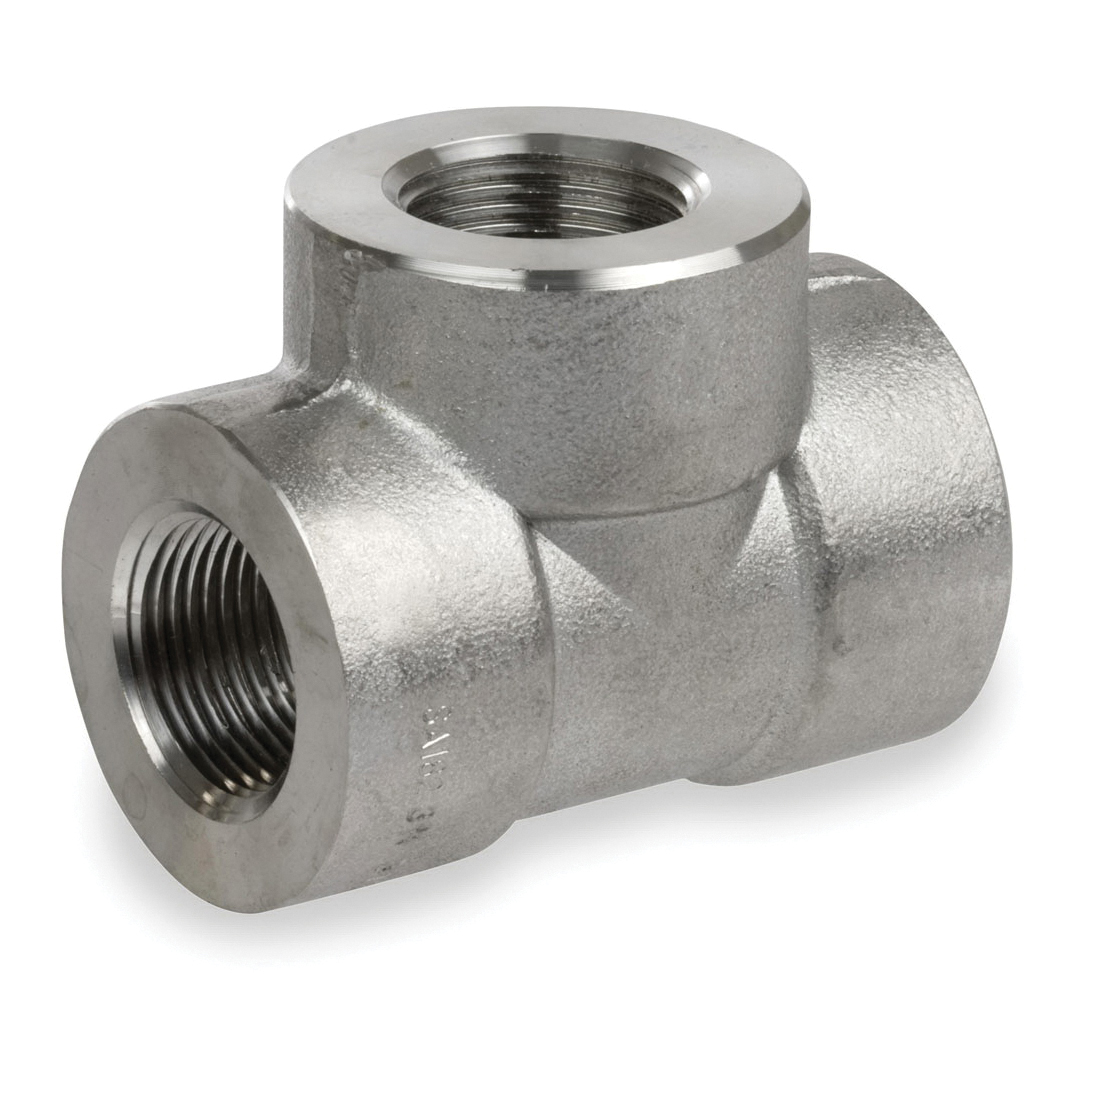 Smith-Cooper® S4034T 006 Tee, 3/4 in, Threaded, 3000 lb, 304L Stainless Steel